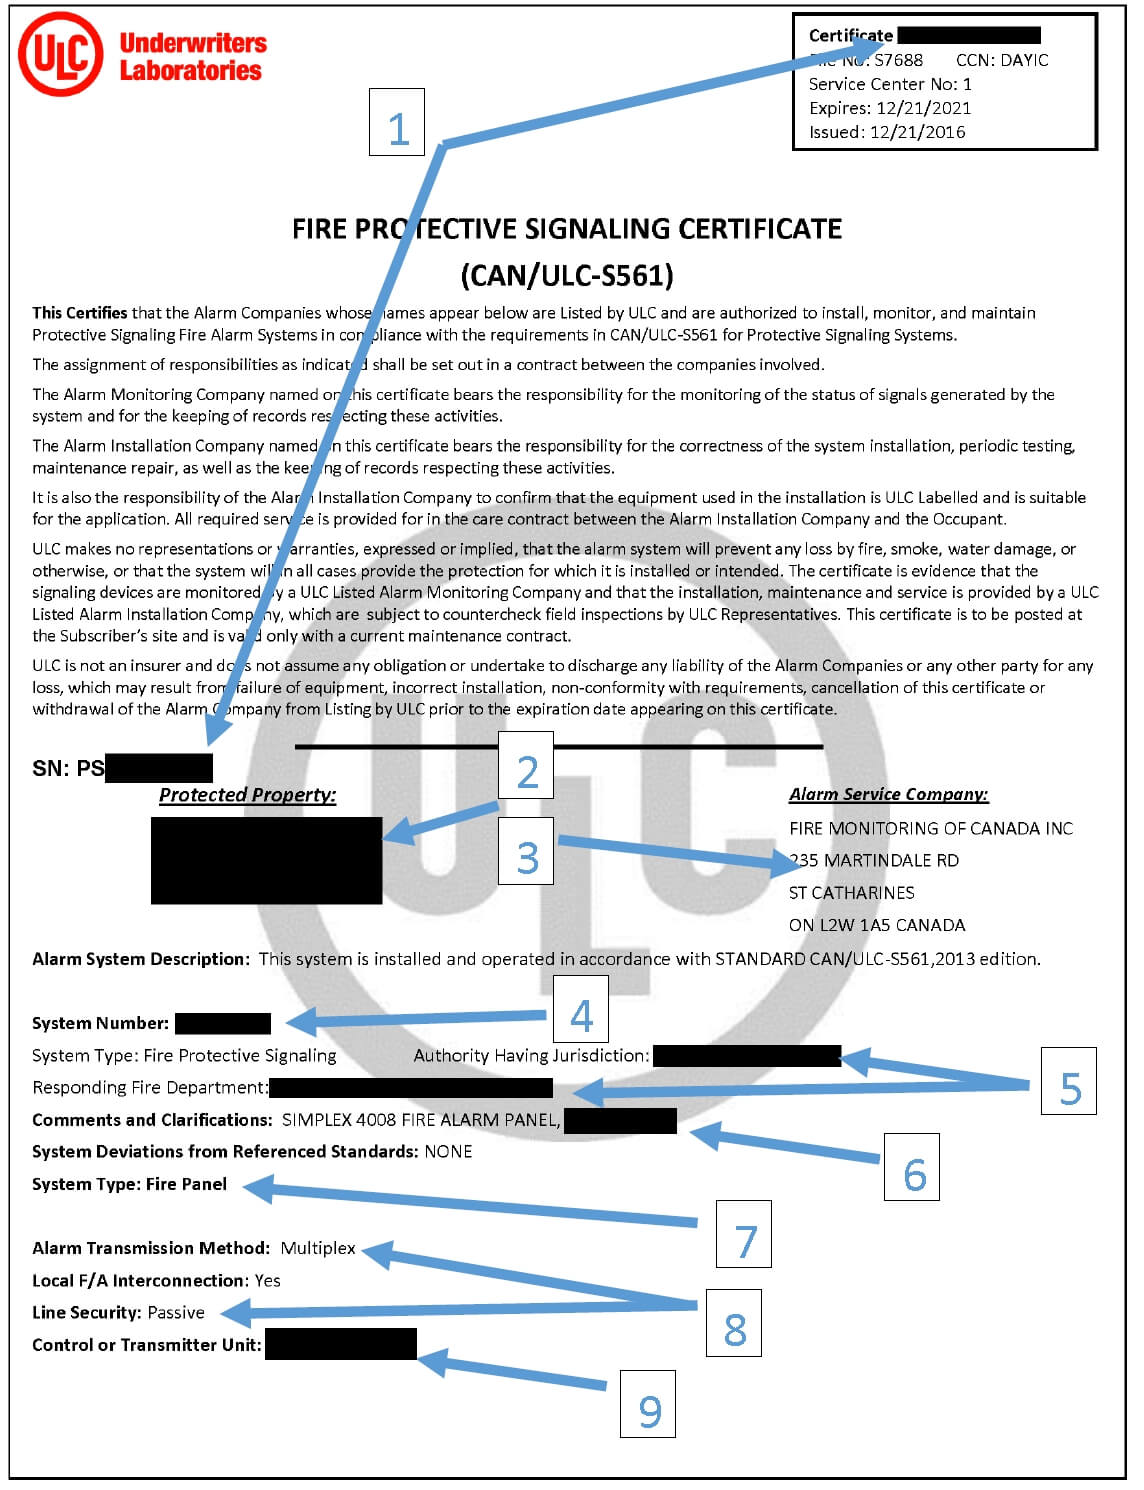 Ulc Fire Alarm Monitoring Certificates What Do They Look Like And